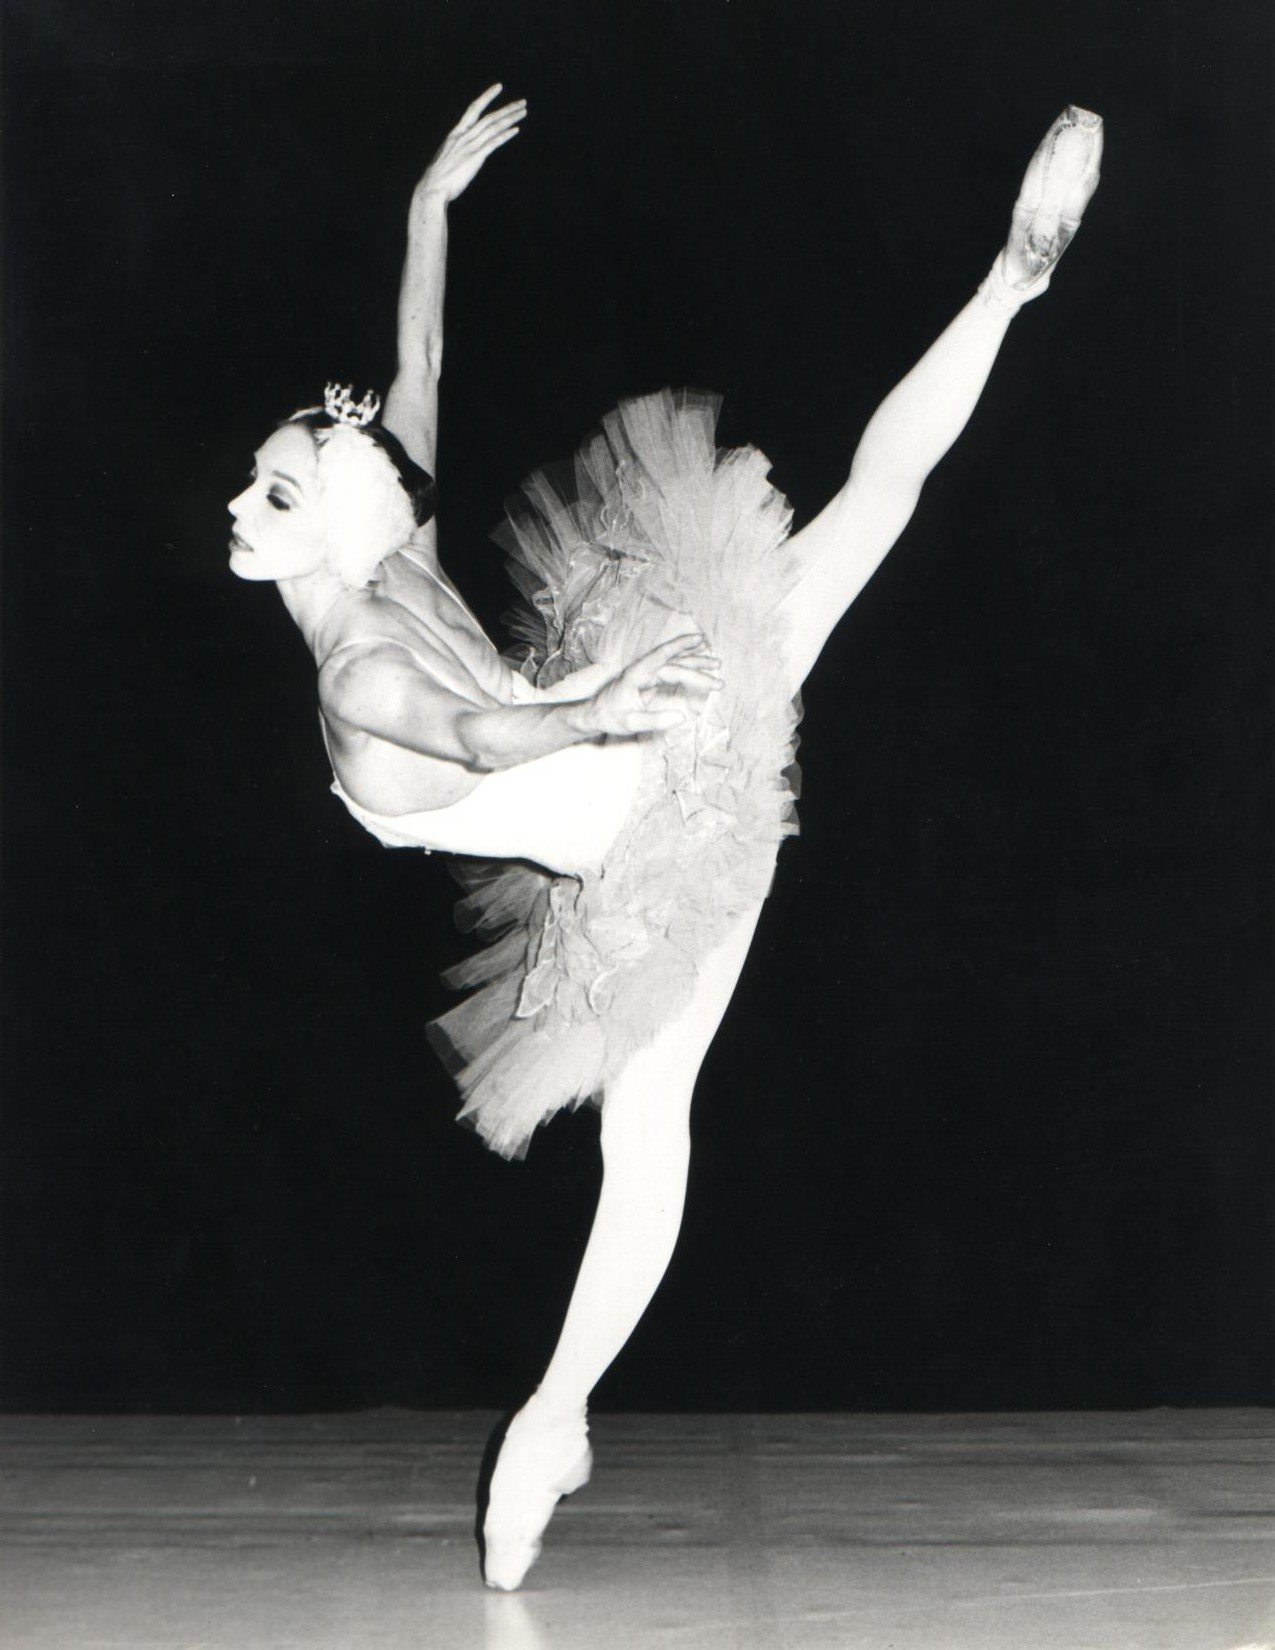 An attitude performed extremely high, indicative of the advancing athleticism in ballet in the second half of the twentieth century.